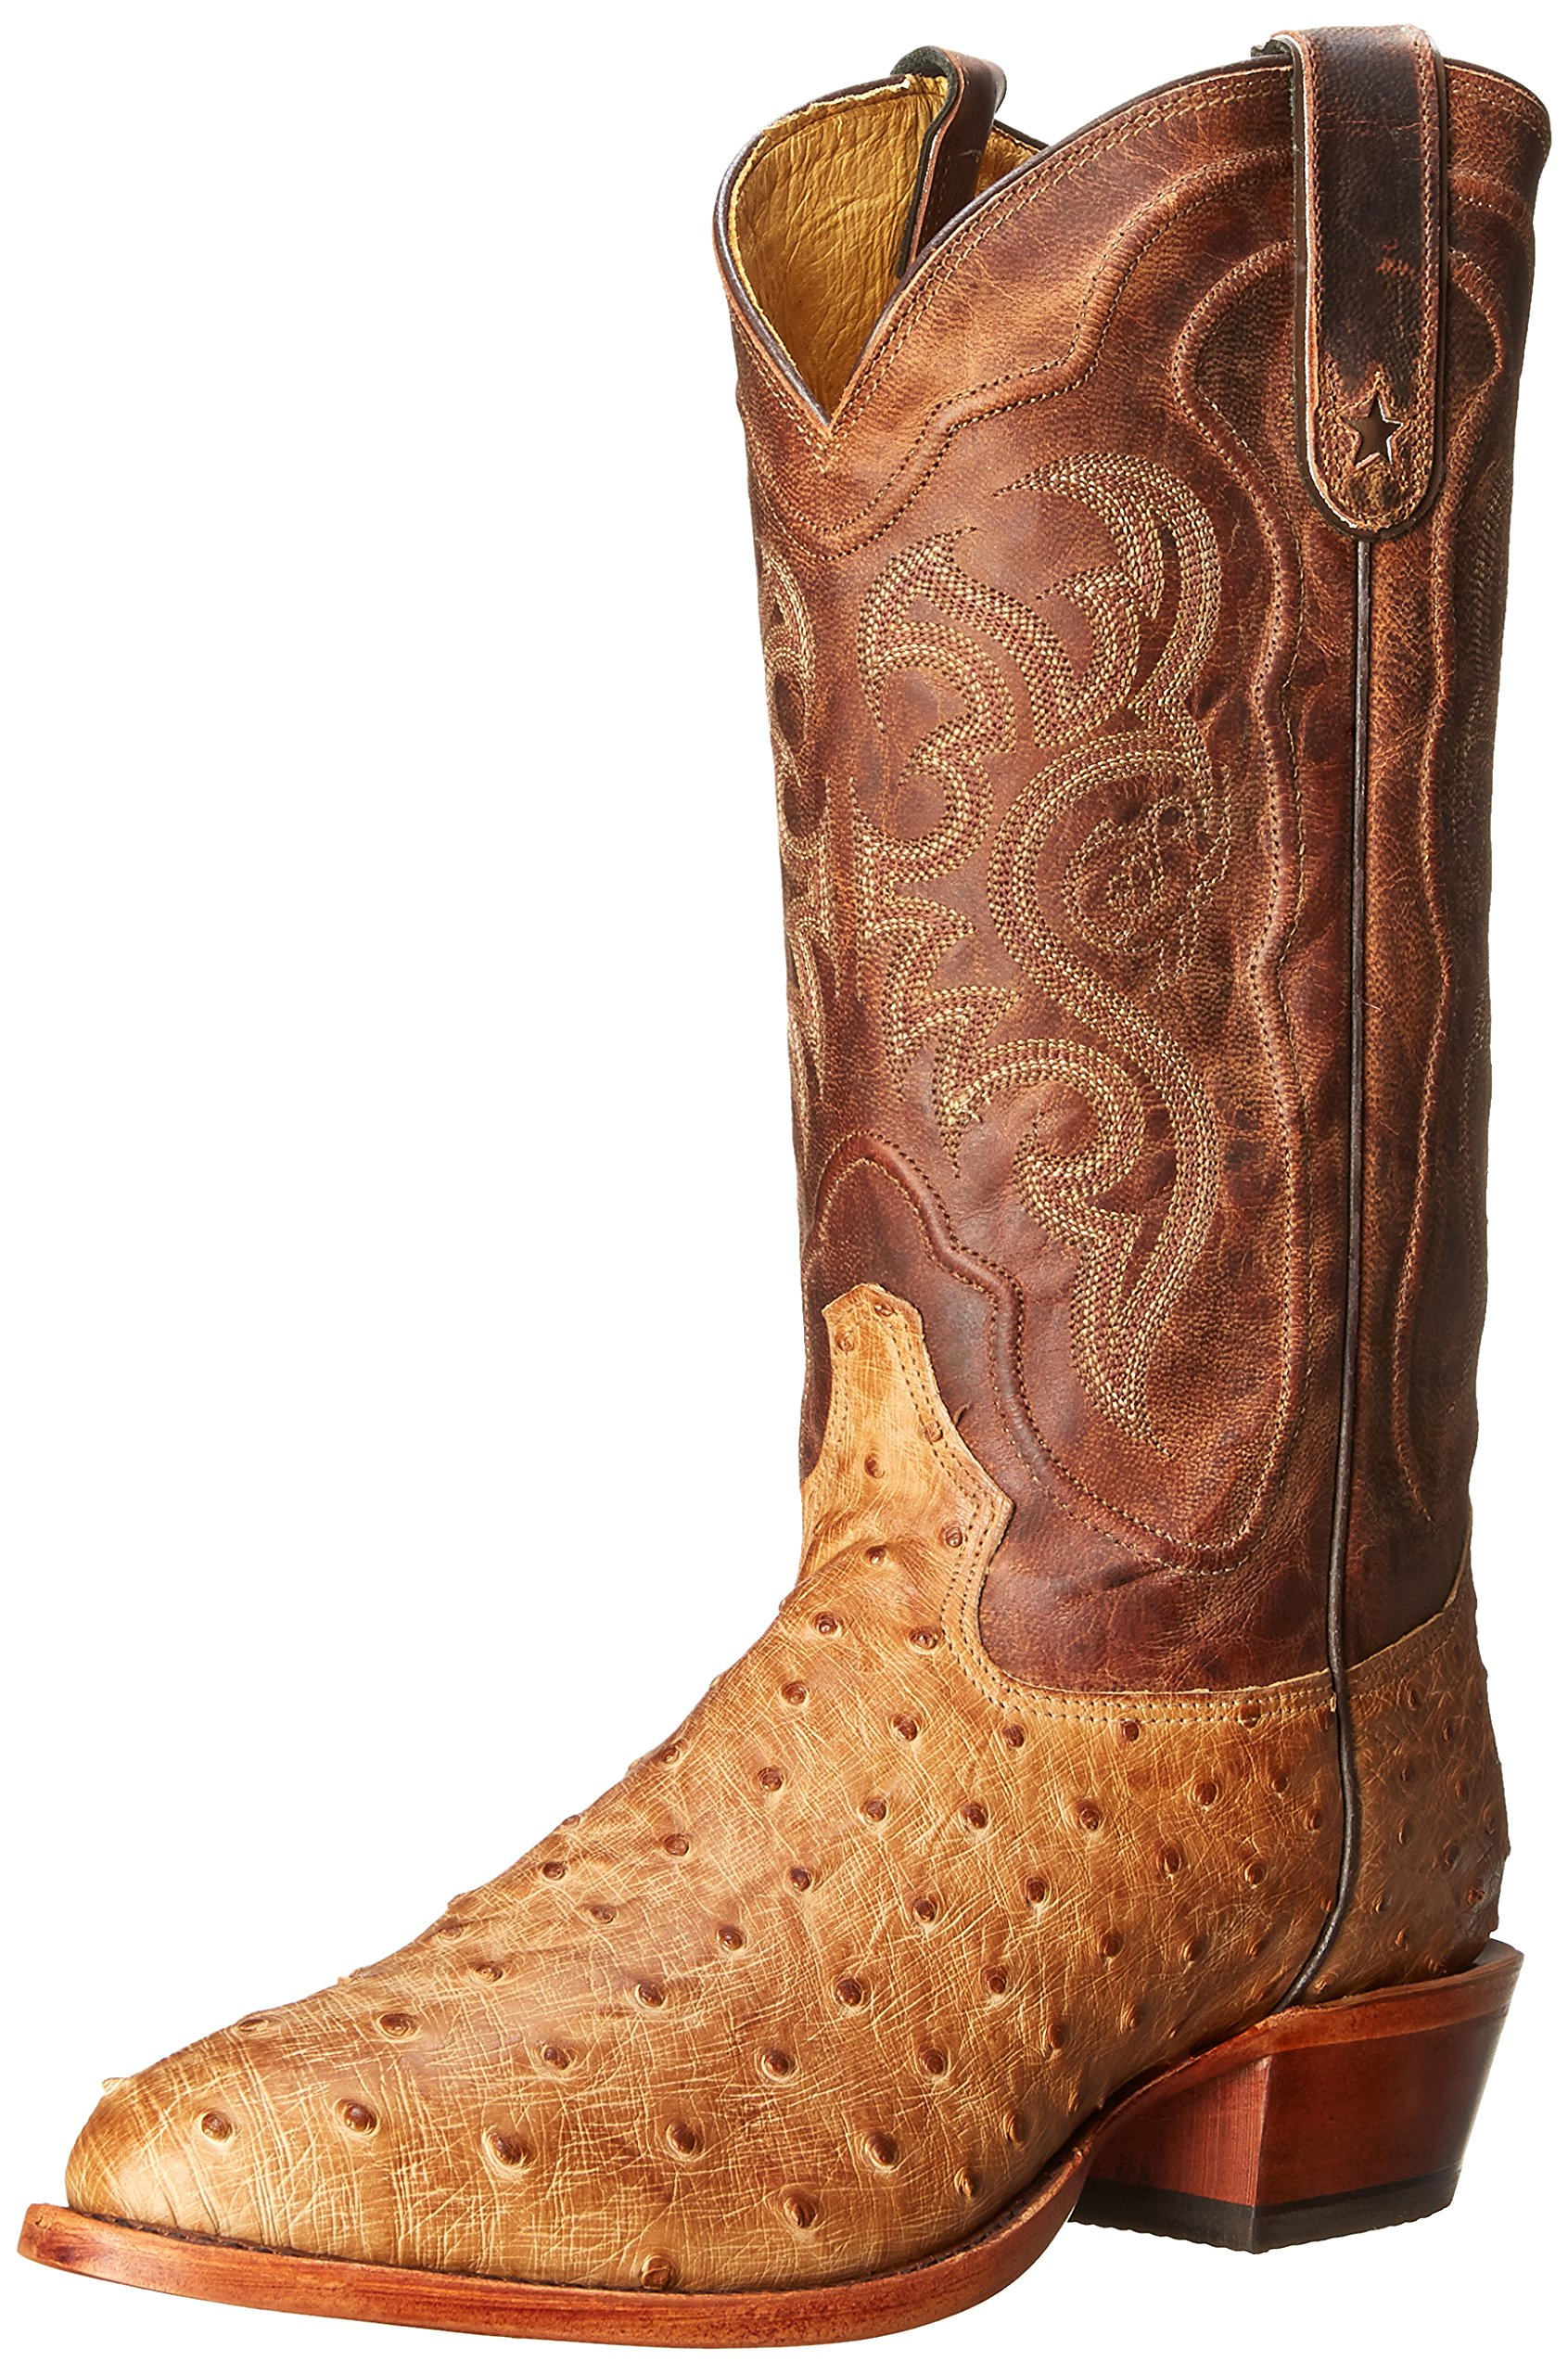 Made in USA Browns | Pullon Western Boots Tony Lama Mens Durmont Tan 13 Height 8964